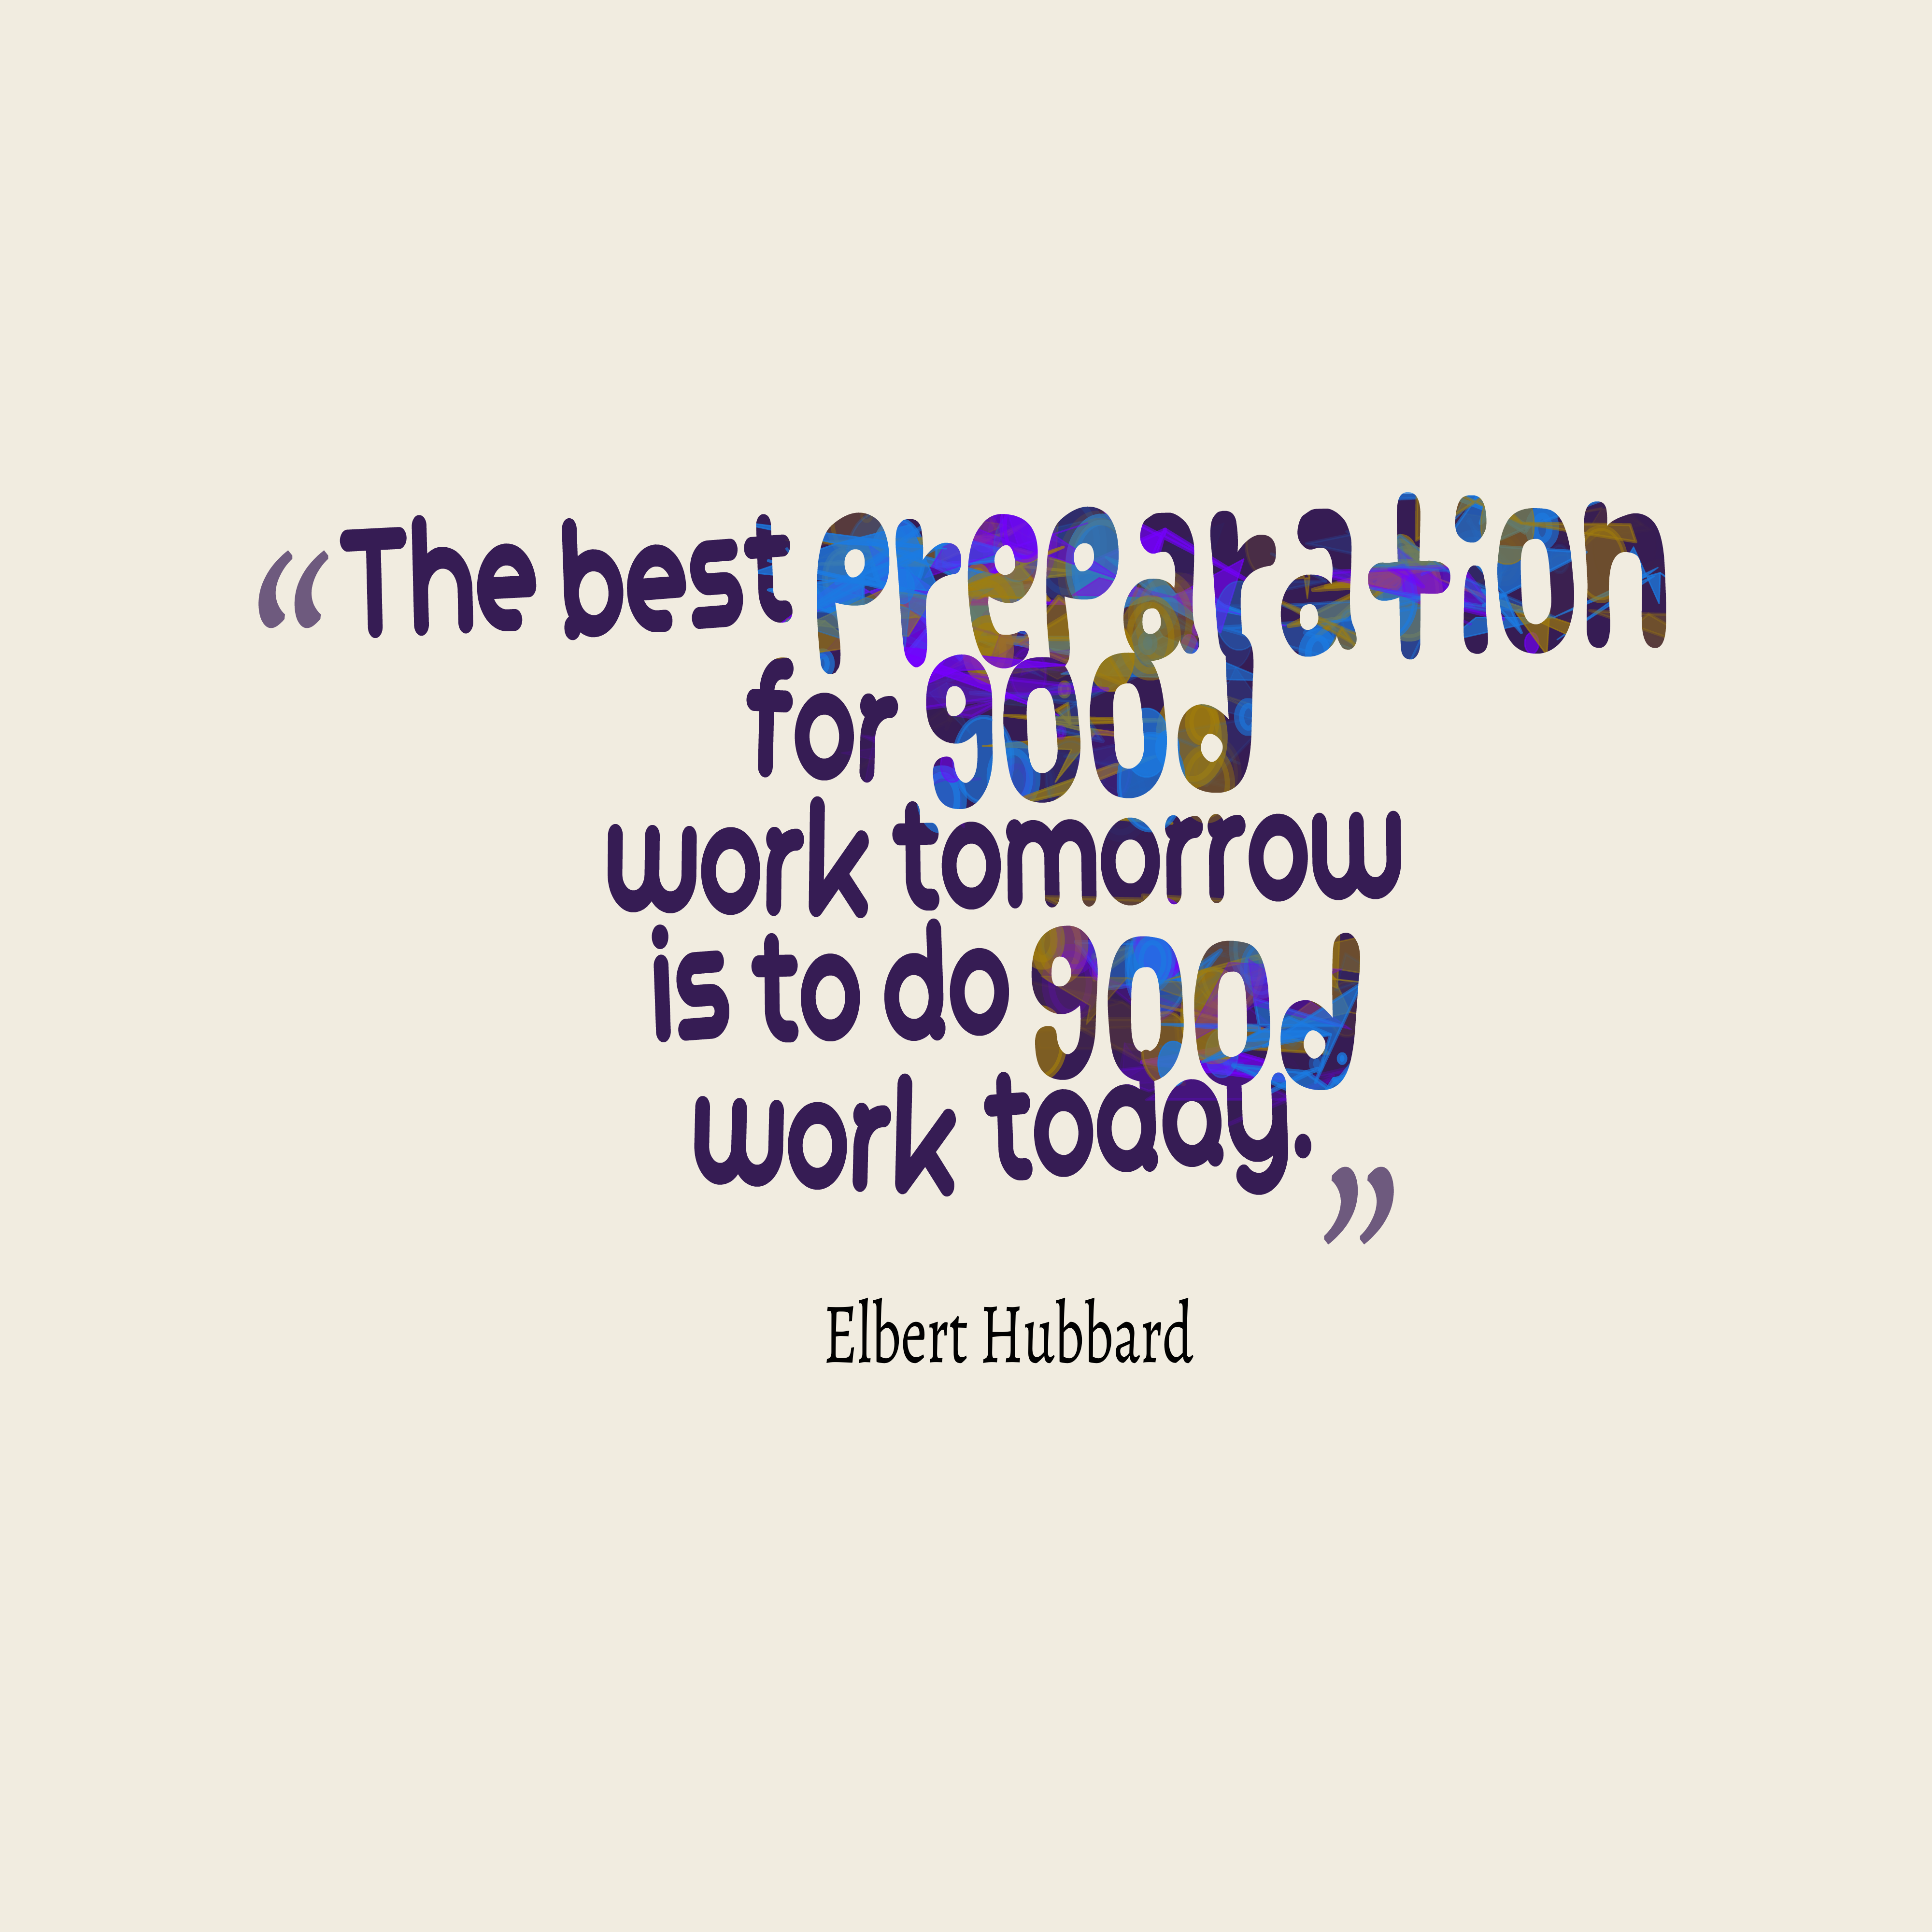 Good Work Done Quotes: Great Job Quotes For Employees. QuotesGram